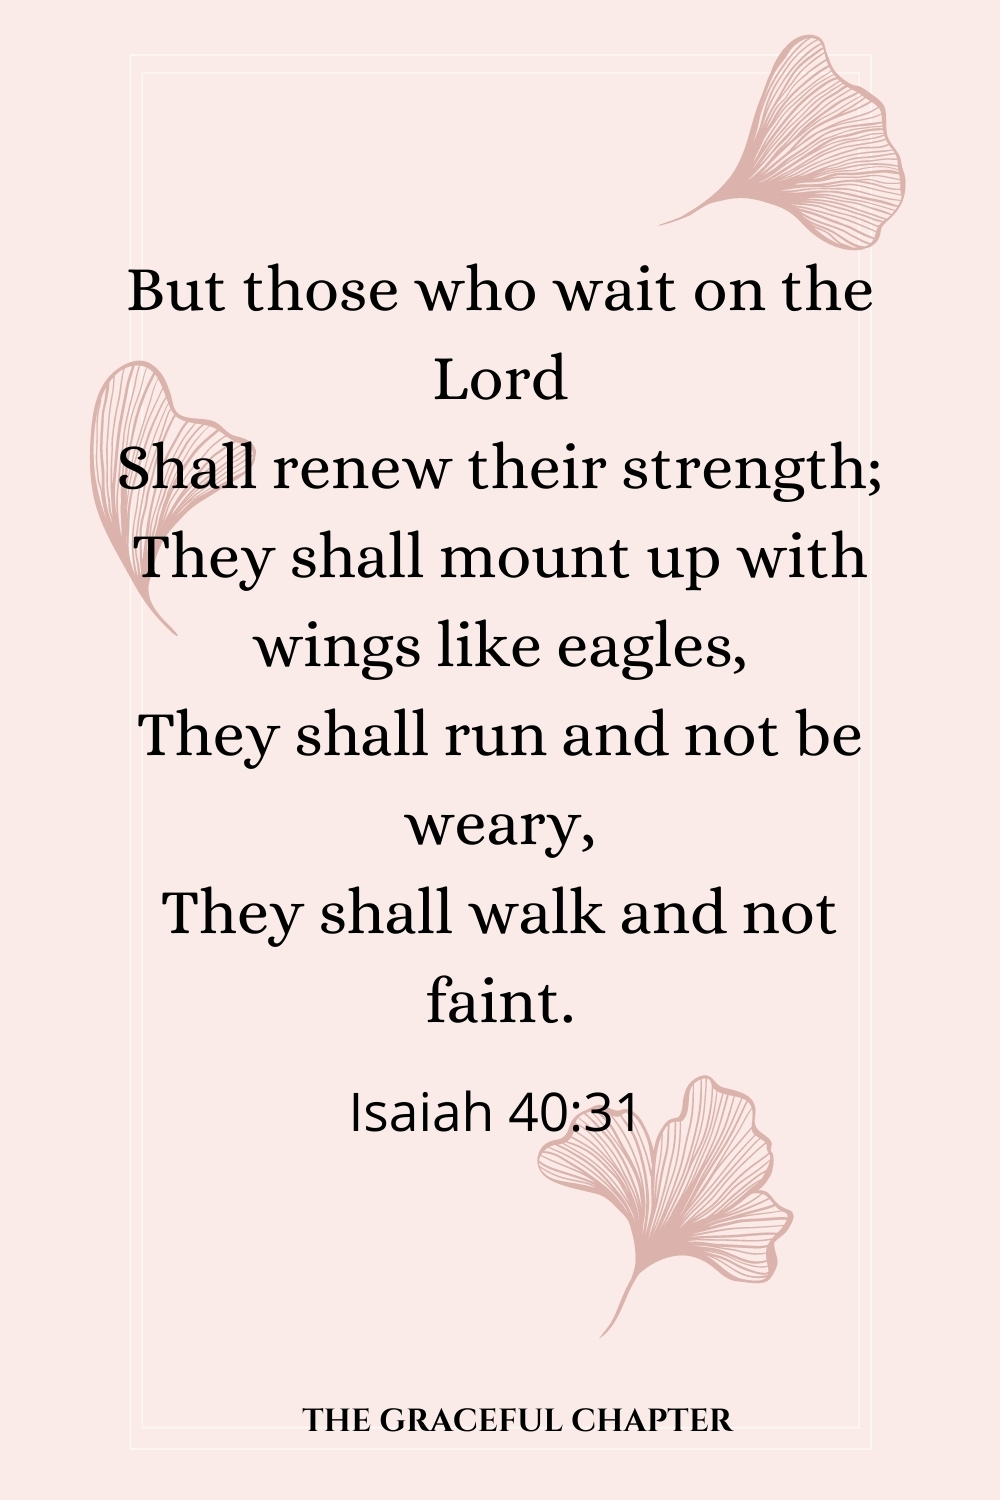 But those who wait on the Lord Shall renew their strength; They shall mount up with wings like eagles, They shall run and not be weary, They shall walk and not faint.  Isaiah 40:31